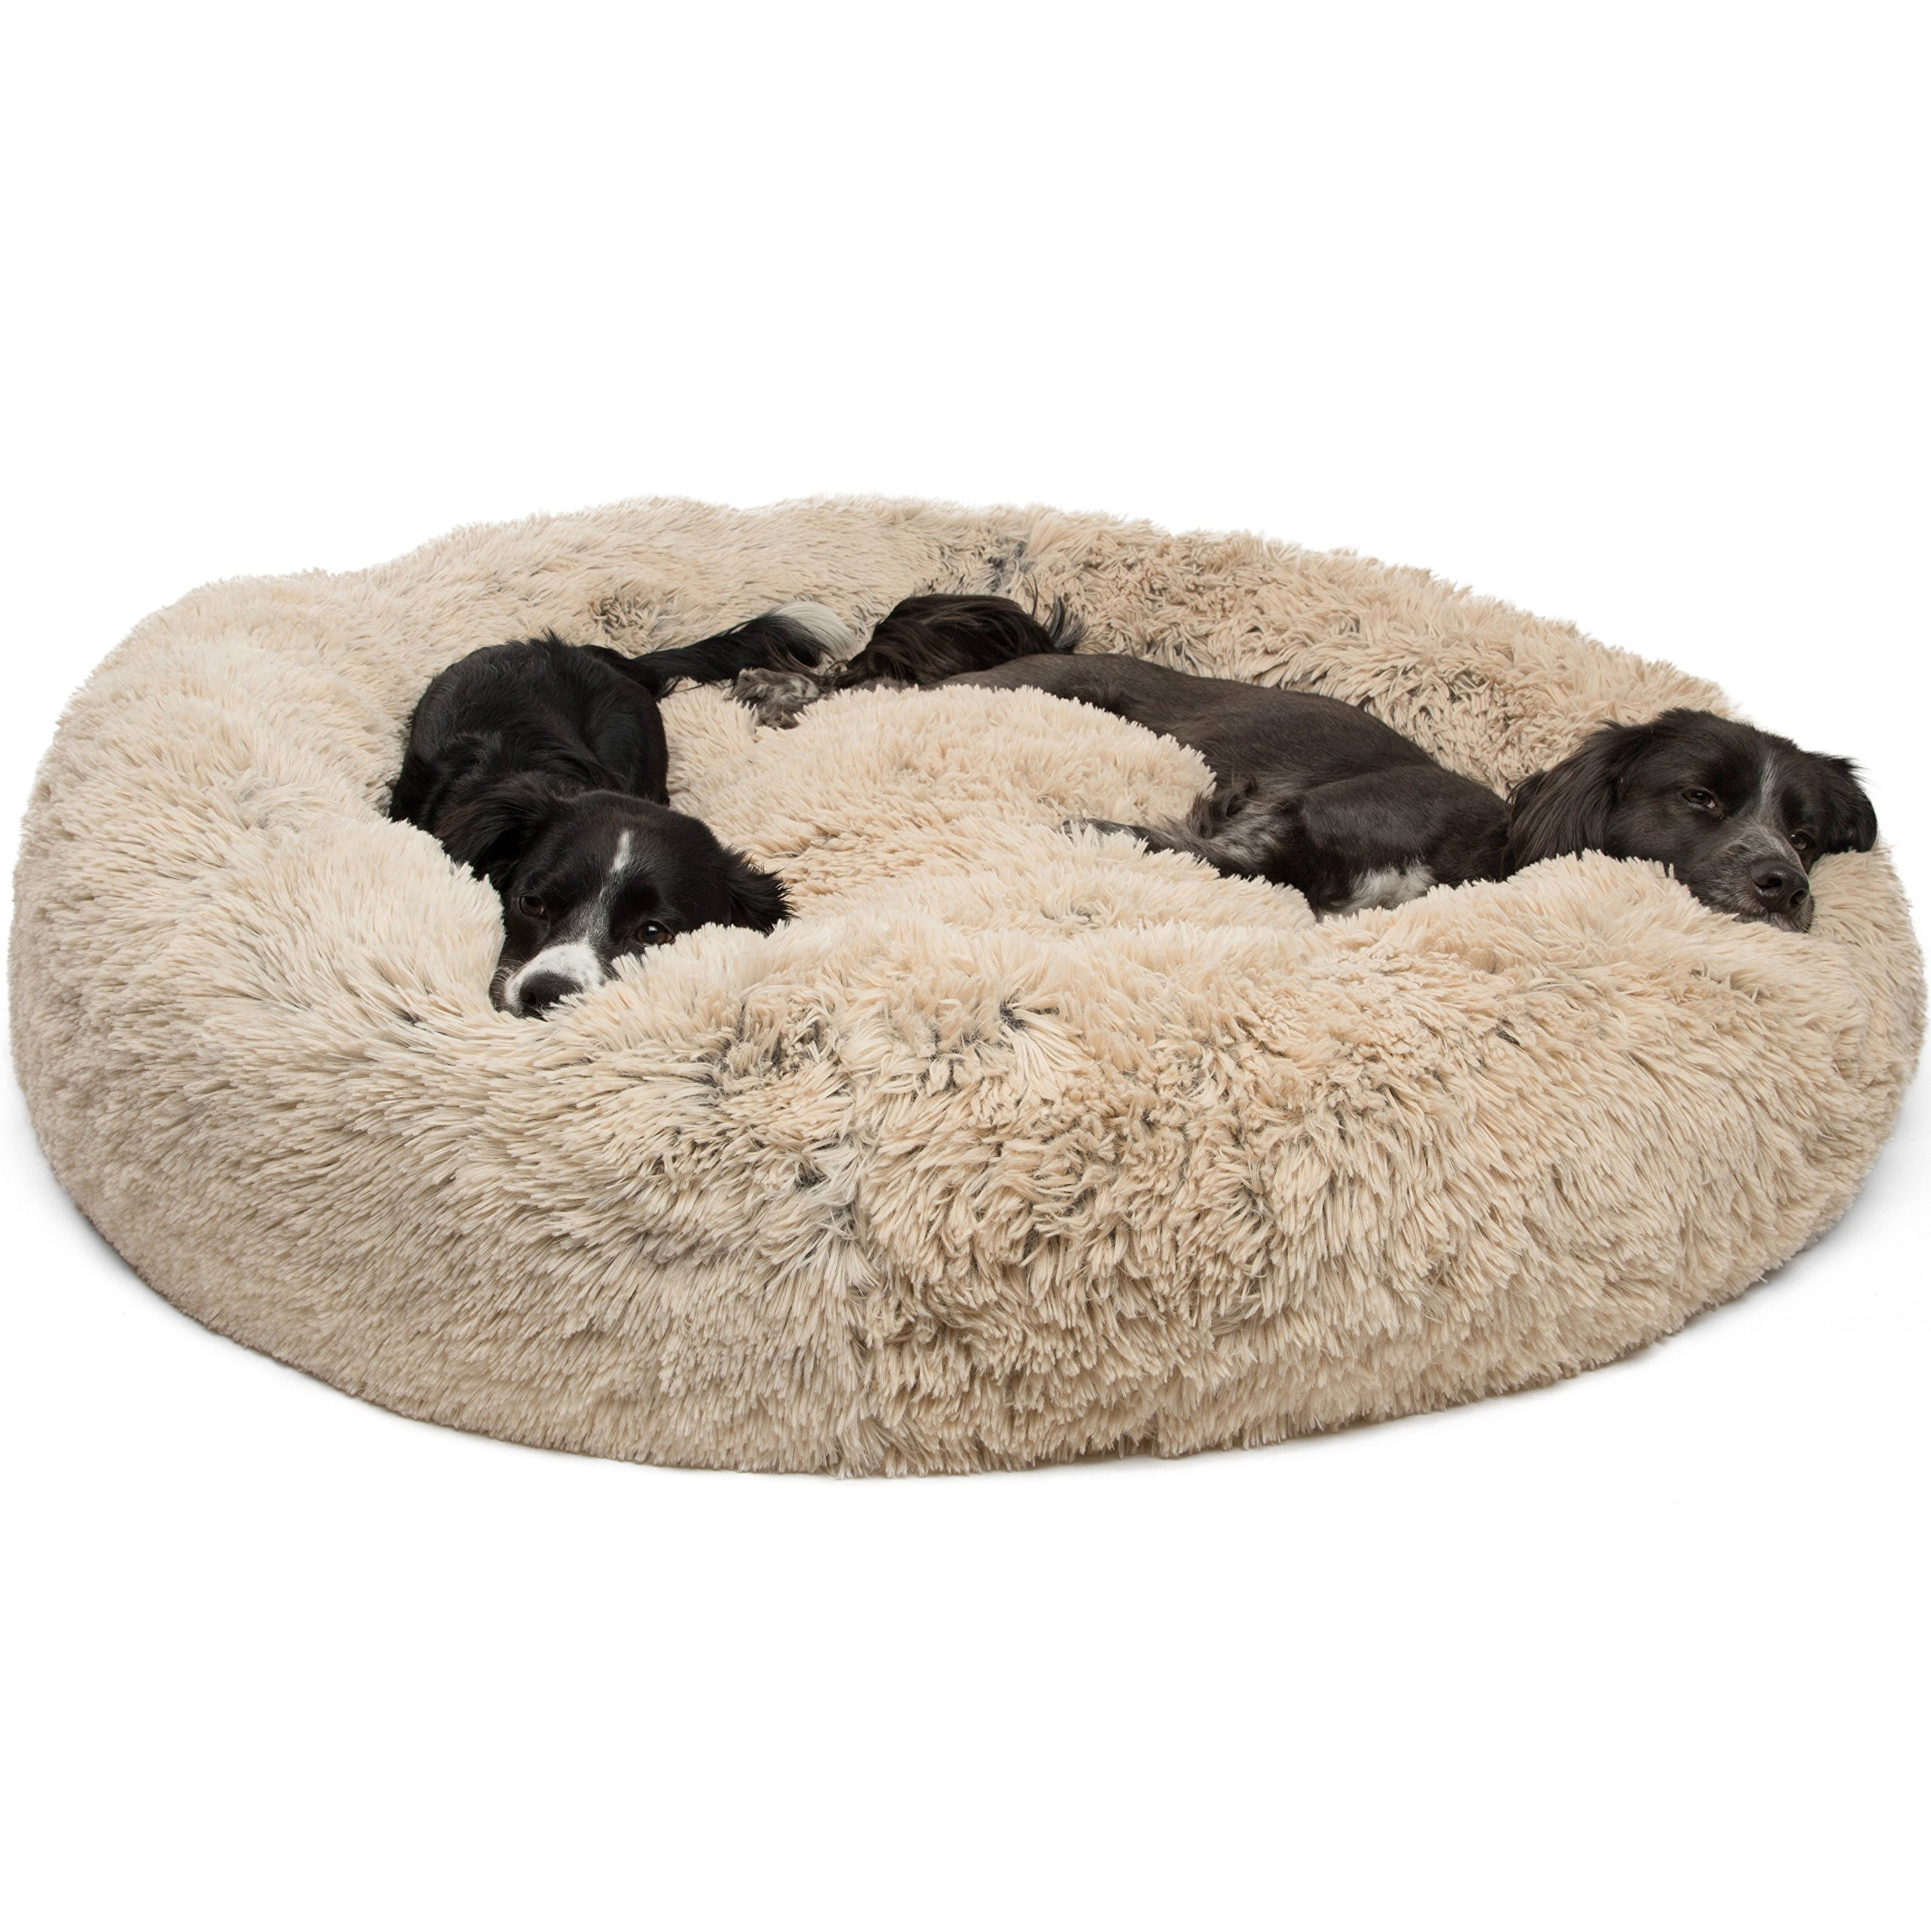 Best Friends by Sheri Calming Shag Vegan Fur Donut Cuddler (45x45, Zippered) - XL Round Donut Cat and Dog Cushion Bed, Removable Shell, Warming and Cozy for Improved Sleep - Prime, Pets Up to 150 lbs by Best Friends by Sheri